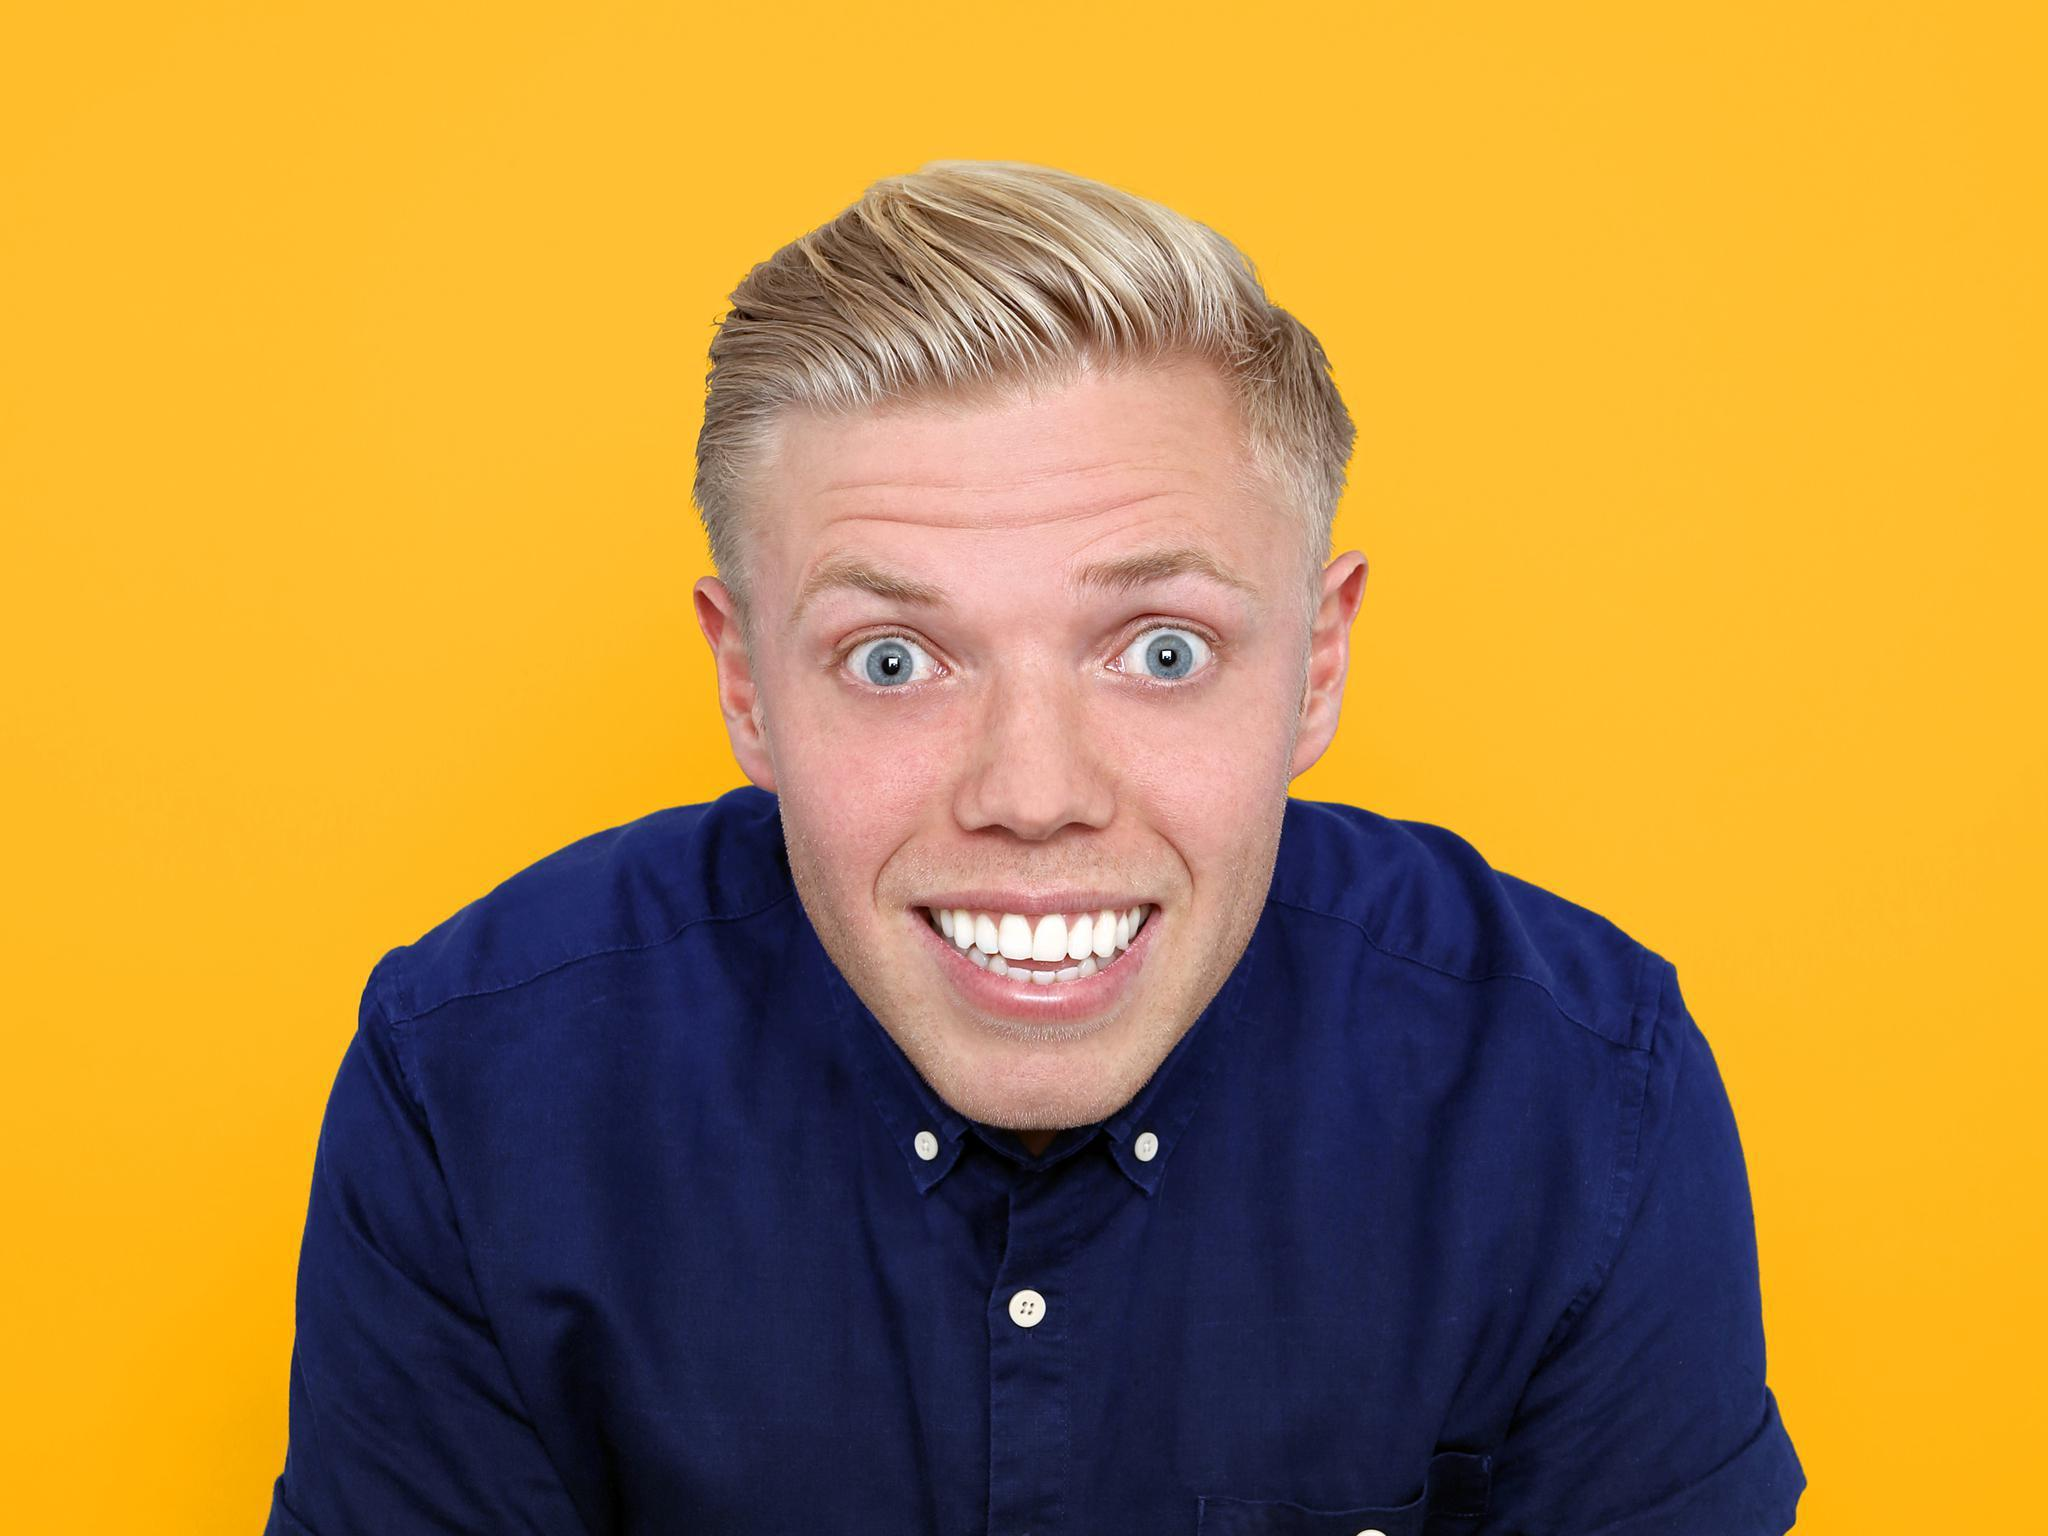 Who is Rob Beckett? Wedding Day Winners host, 8 Out Of 10 Cats captain and hit comedian